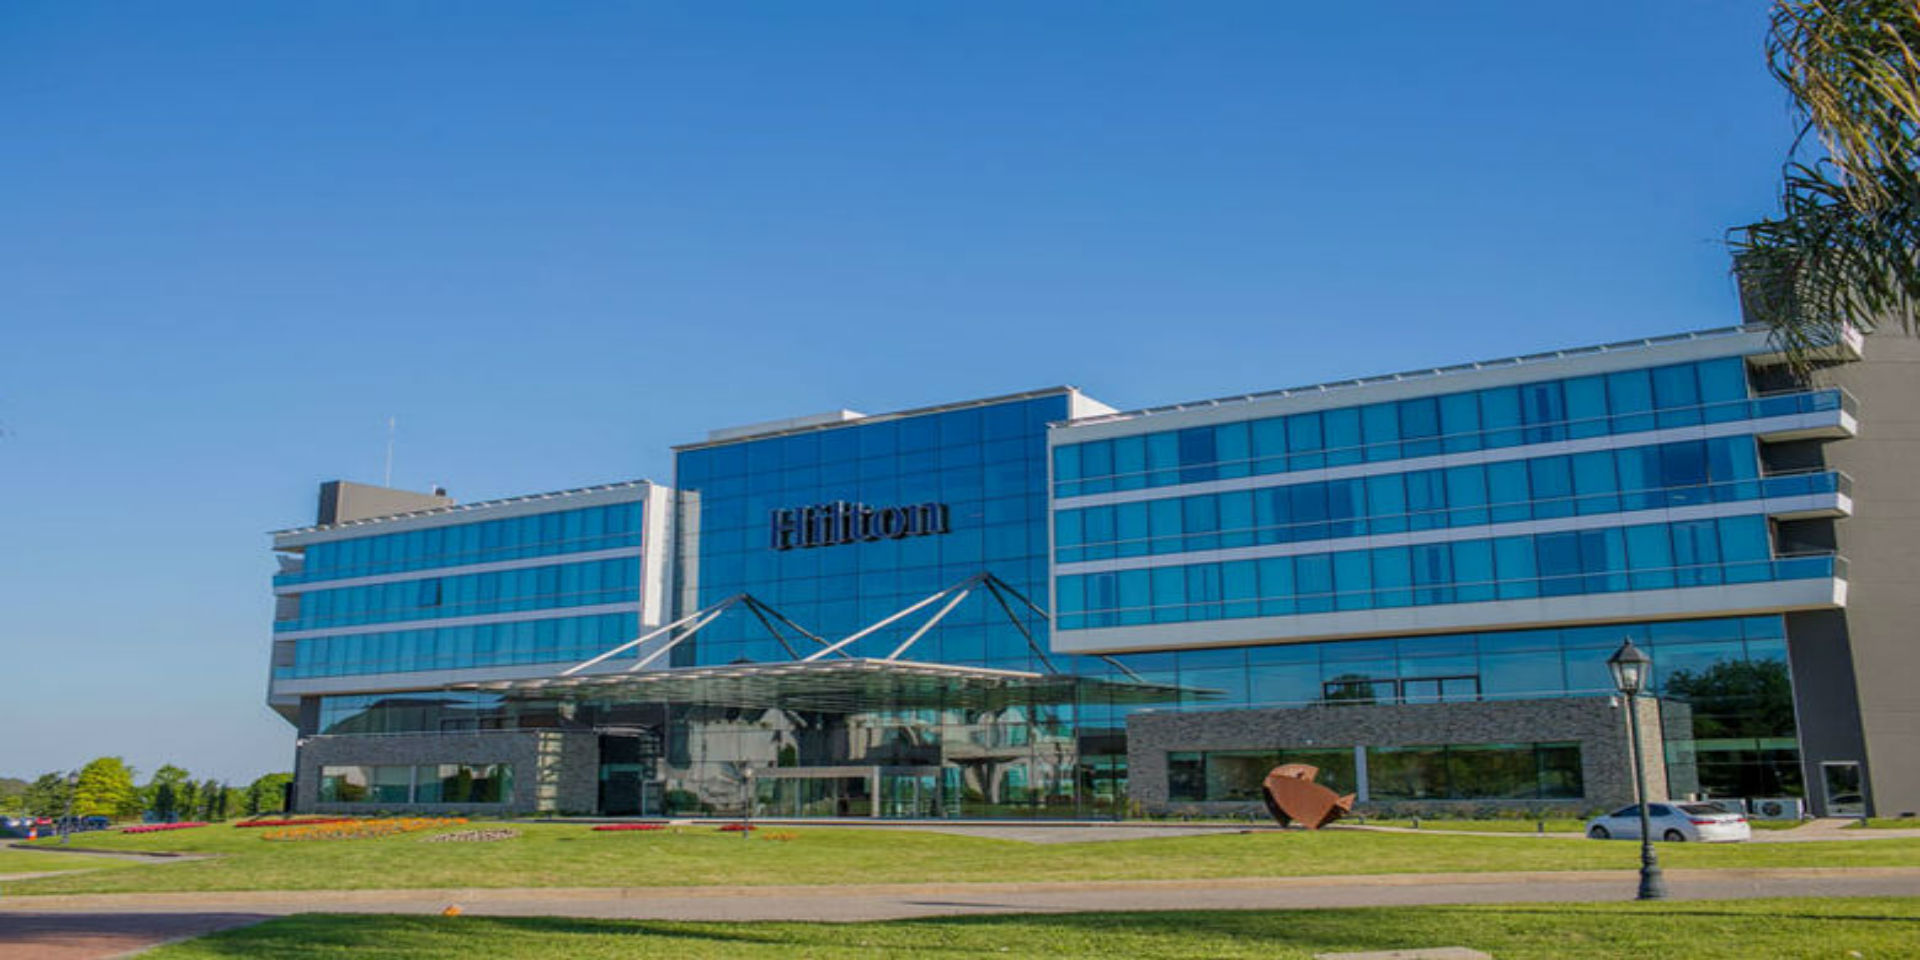 Hilton Expands Presence in Argentina with Debut of Hilton Pilar in Greater Buenos Aires